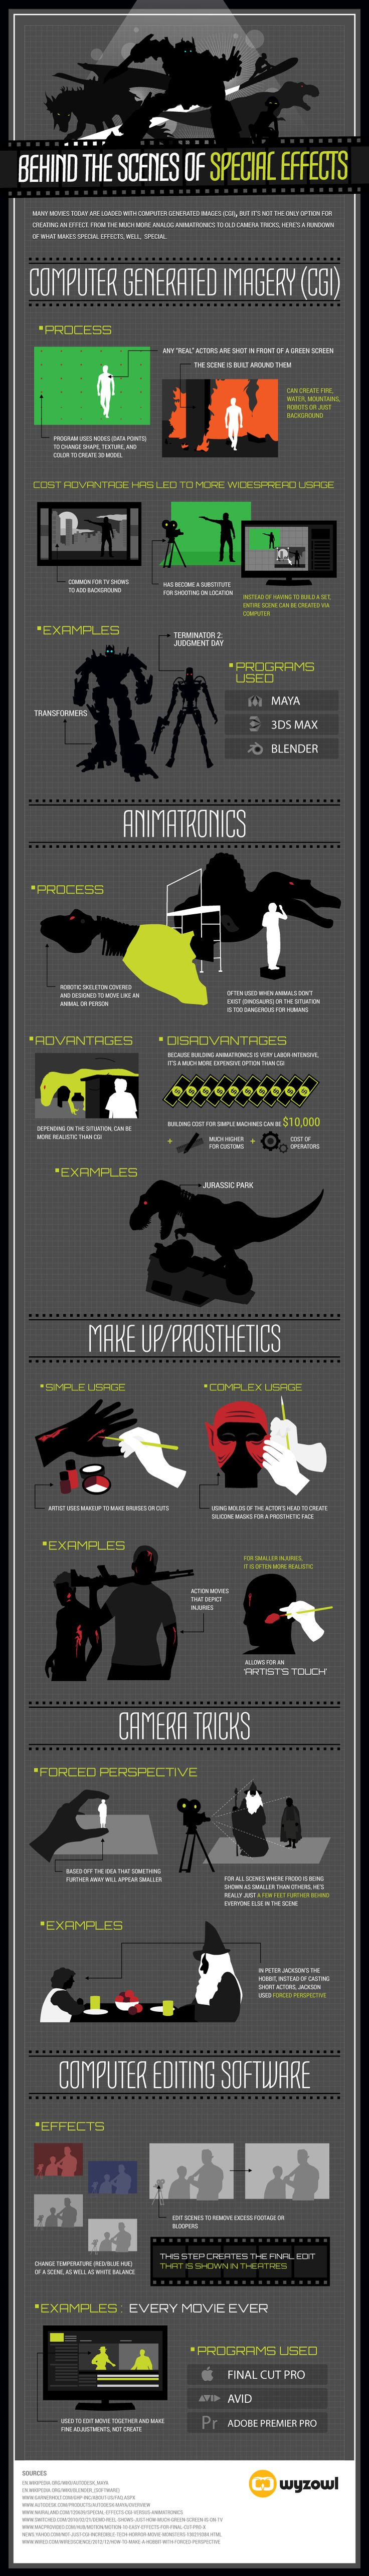 In the following infographic, we're shedding light on a few different types of special effects used by movie directors and producers today.